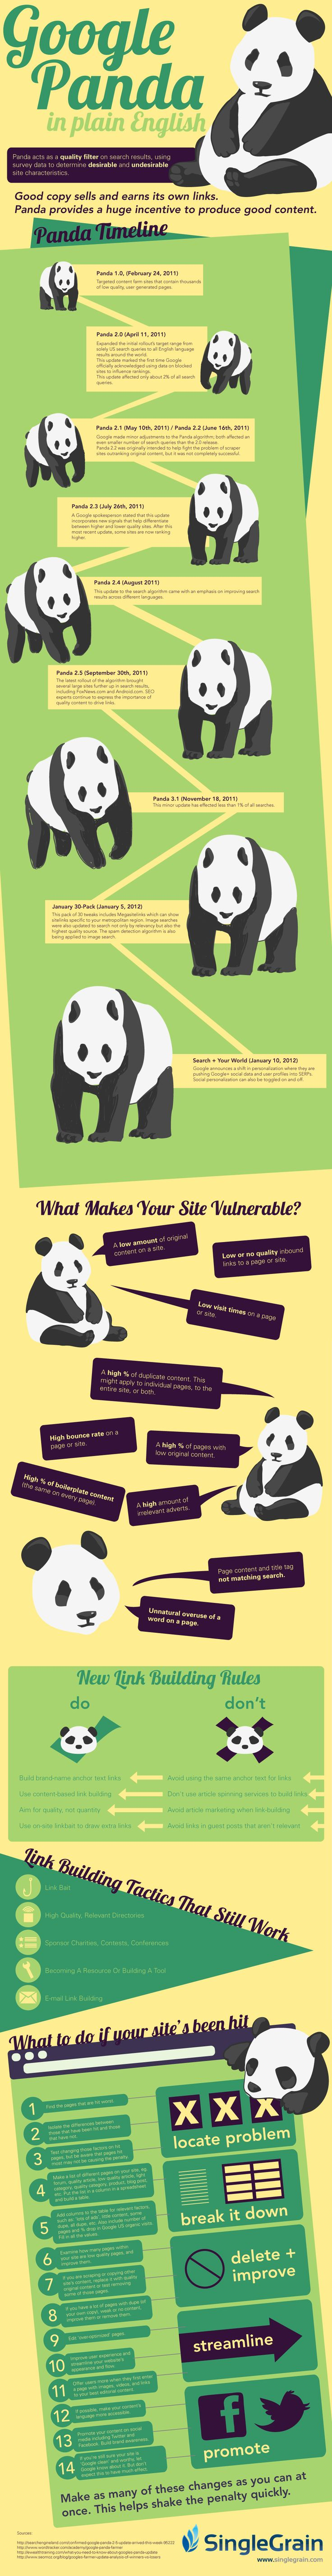 Google Panda Info graphic, showing the effect of the Google Panda update on website rankings and offering advice for anyone who's site was affected by the update